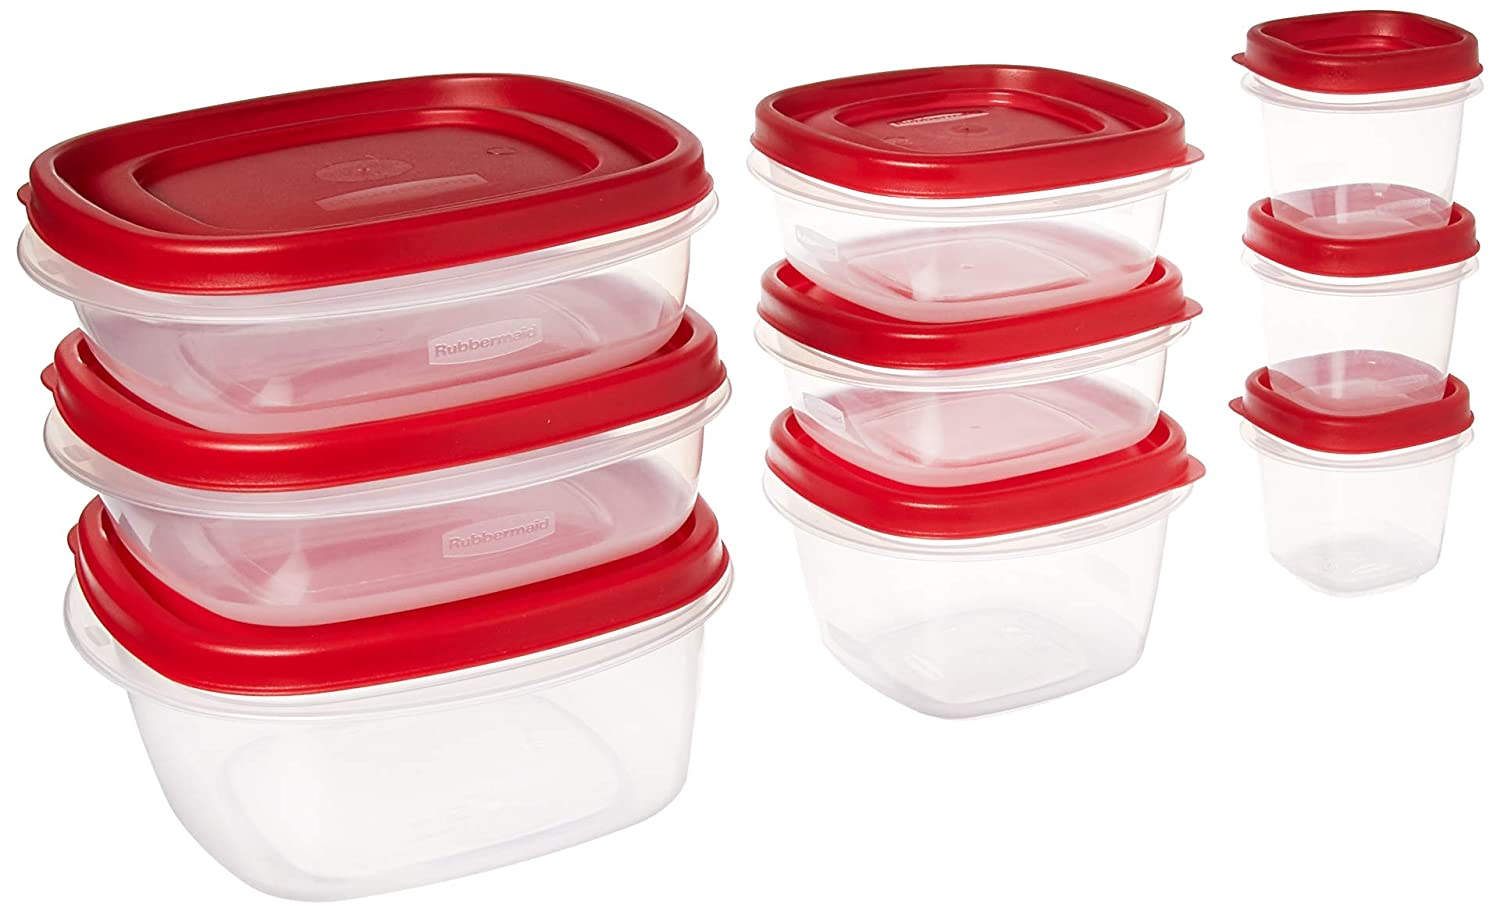 Rubbermaid 071691236986 Easy Find Lids Food Storage Container, 18-Piece Set, Red, Assorted,